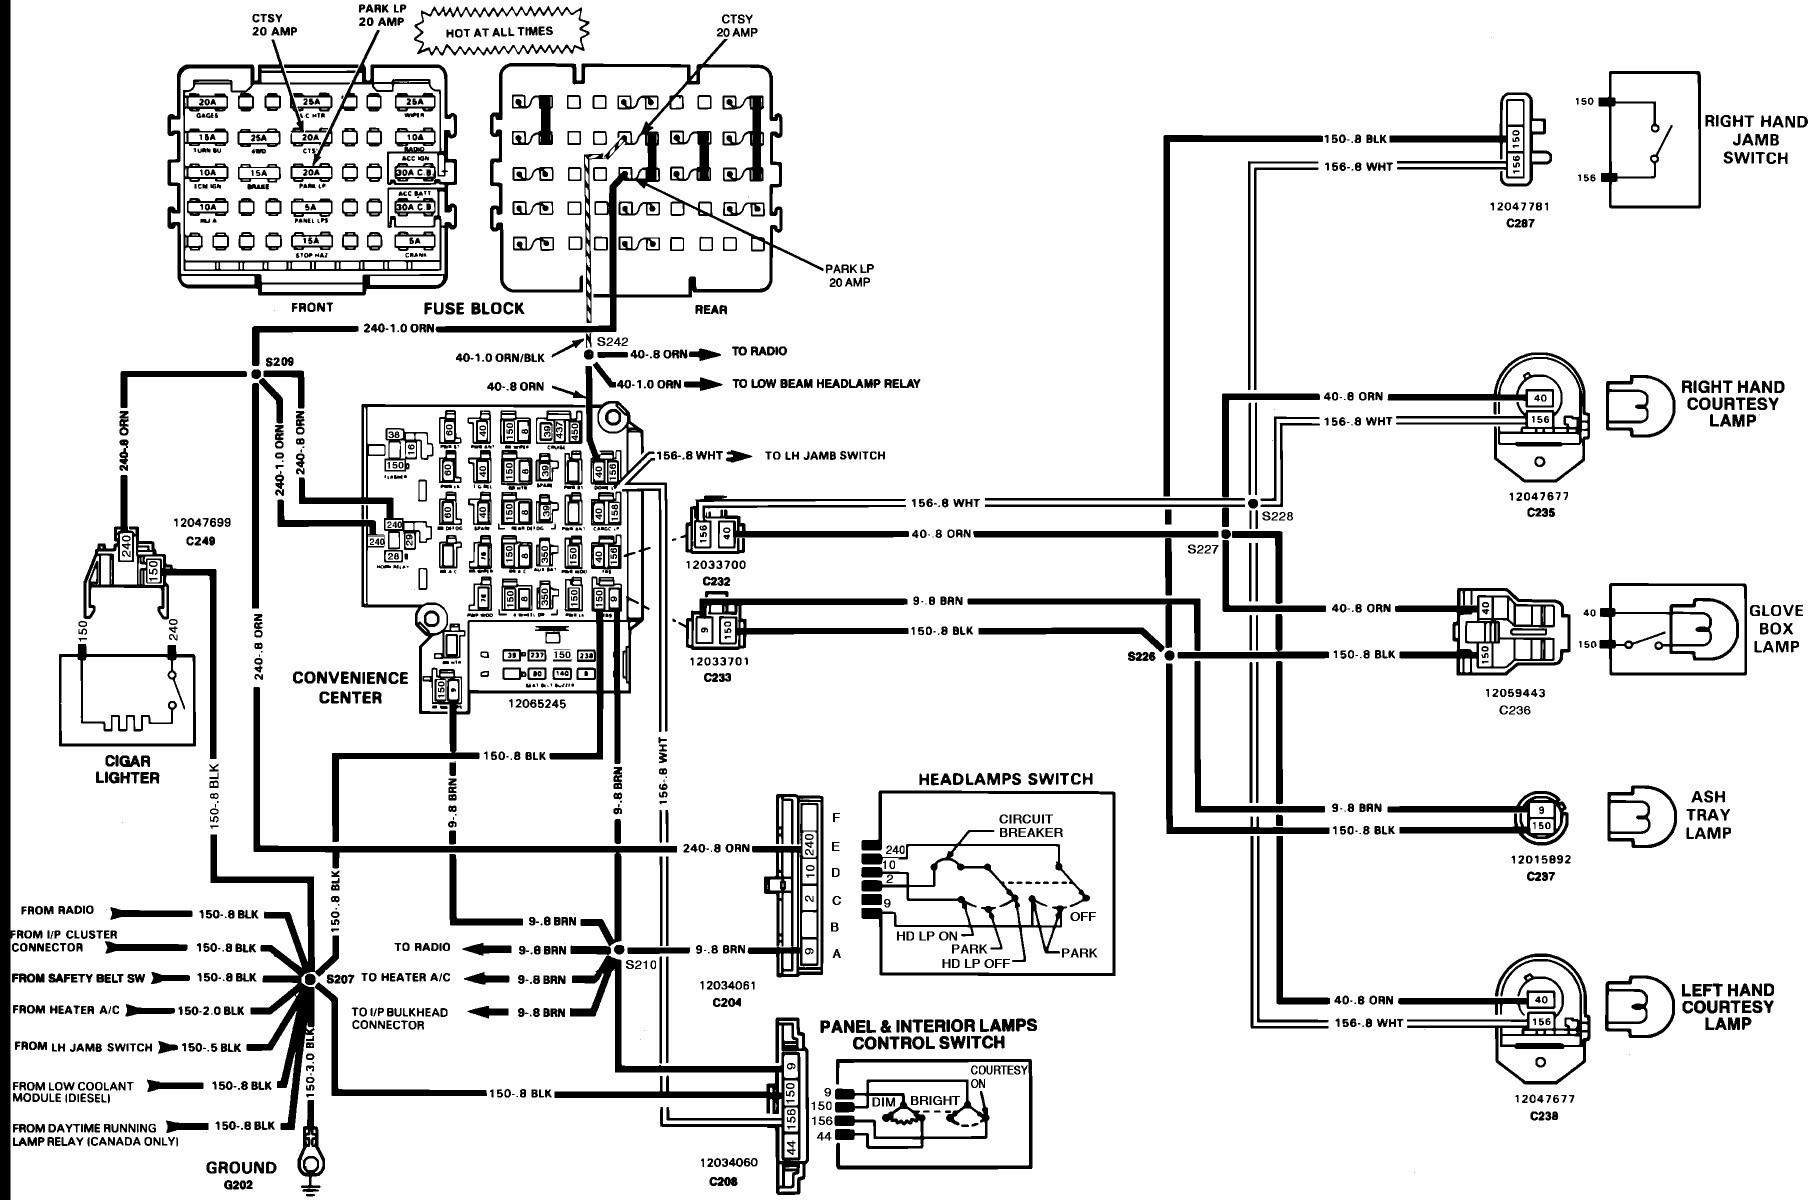 trane vfd wiring diagram wiring library88 98 chevy radio wiring diagram \u2022 wiring diagram for free